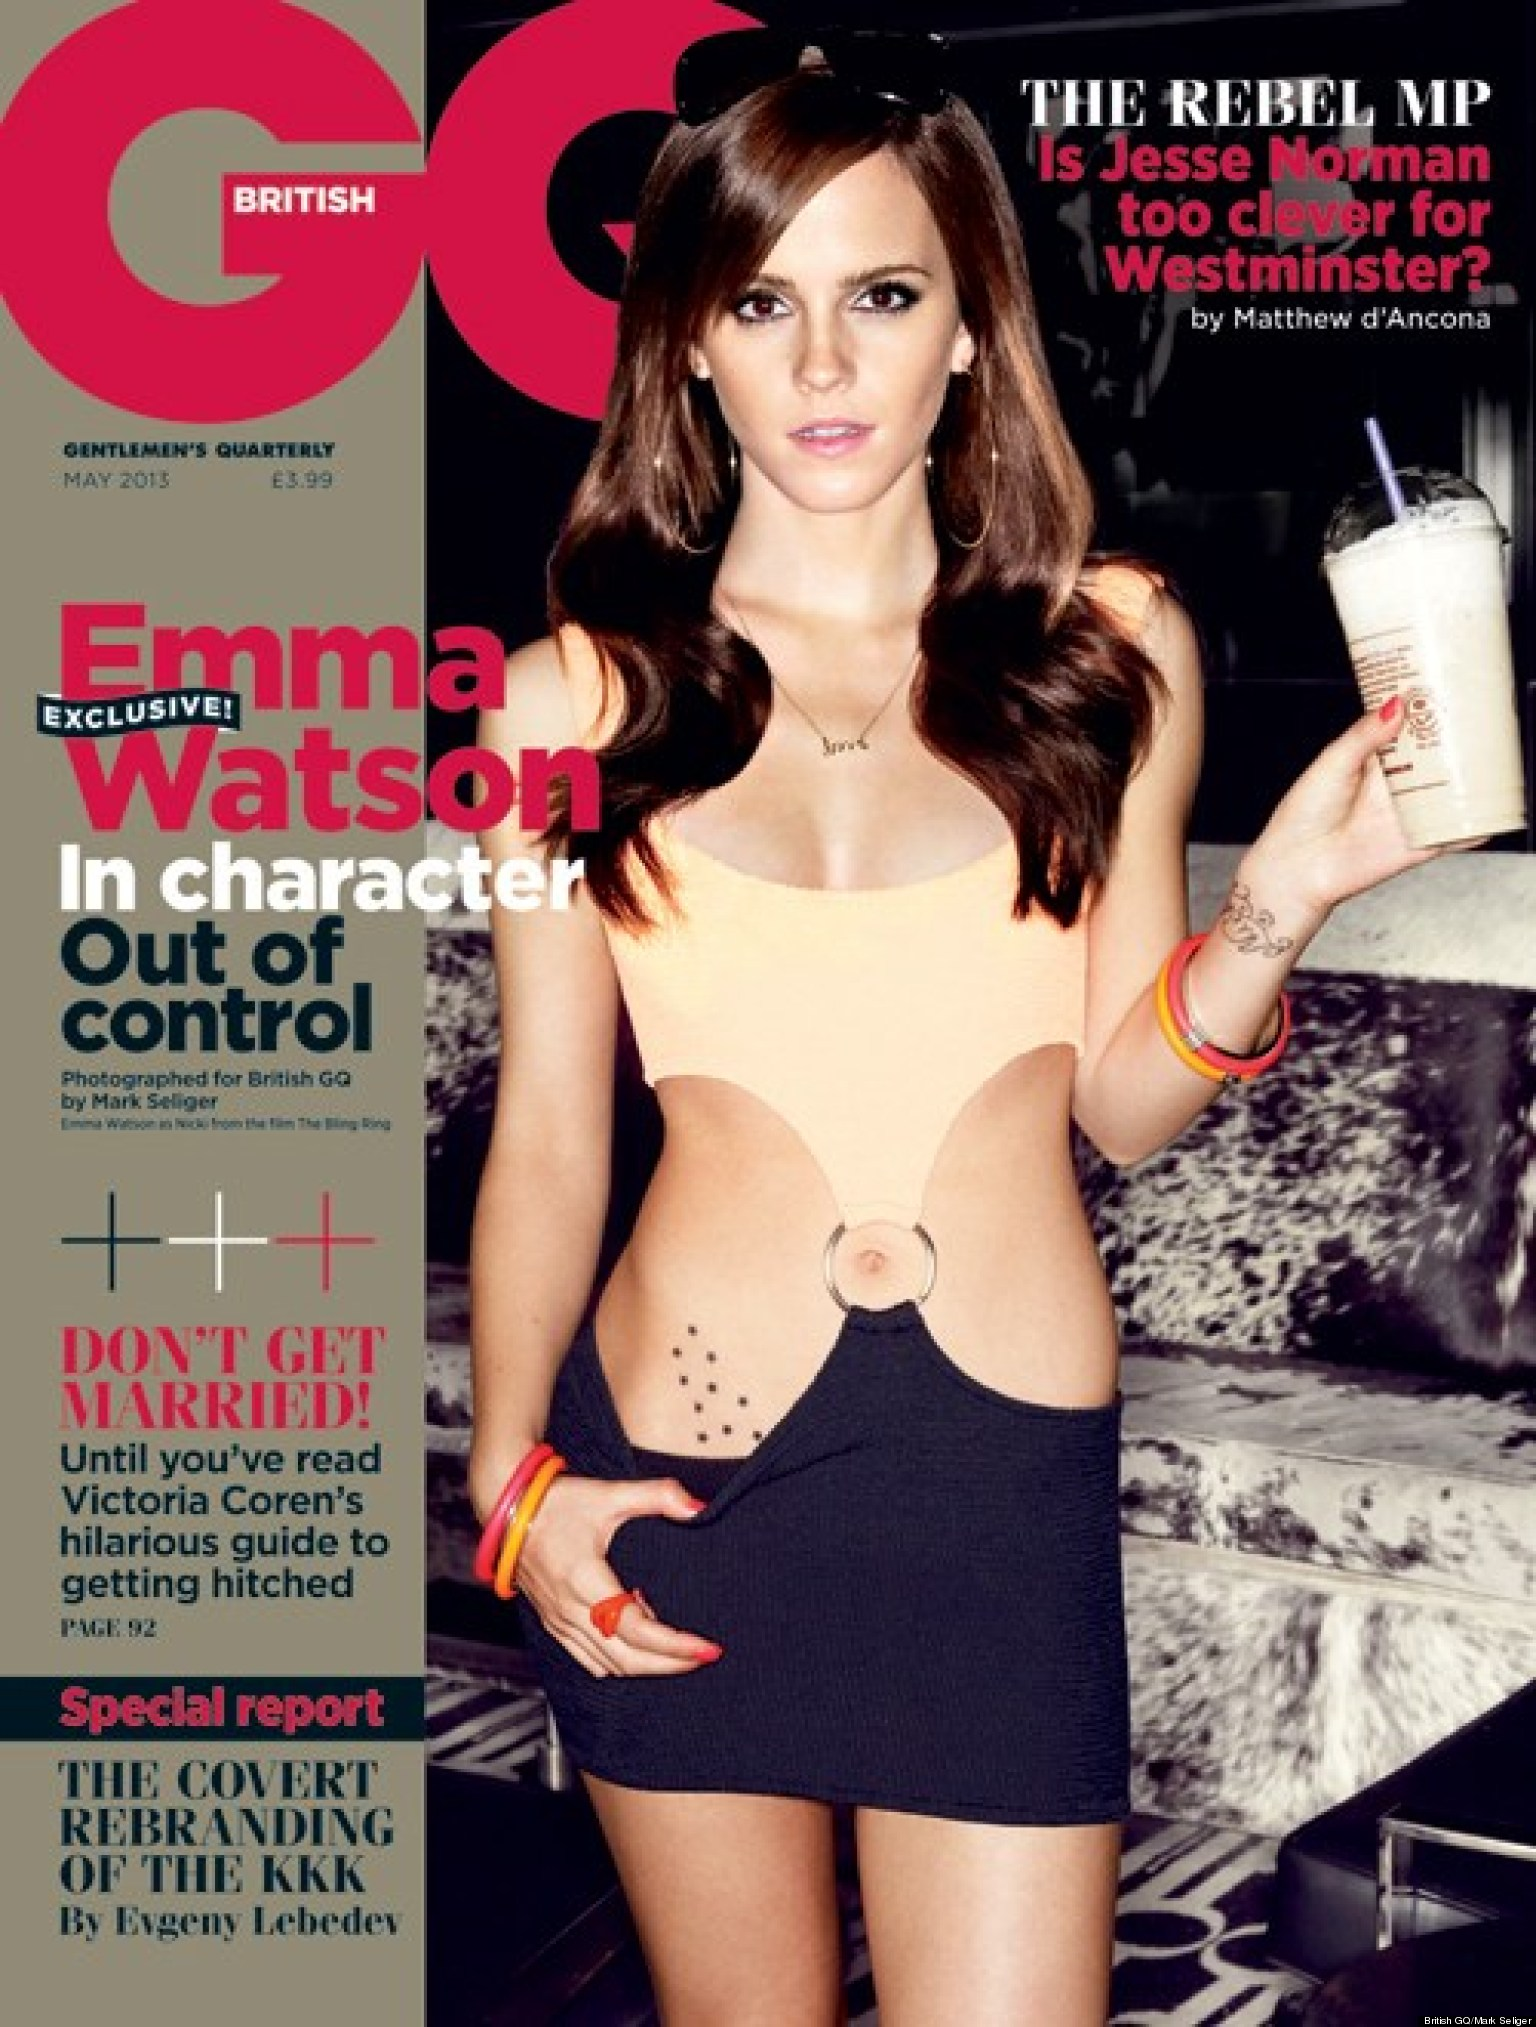 emma watson british gq cover is actress' sexiest yet (photo) | huffpost